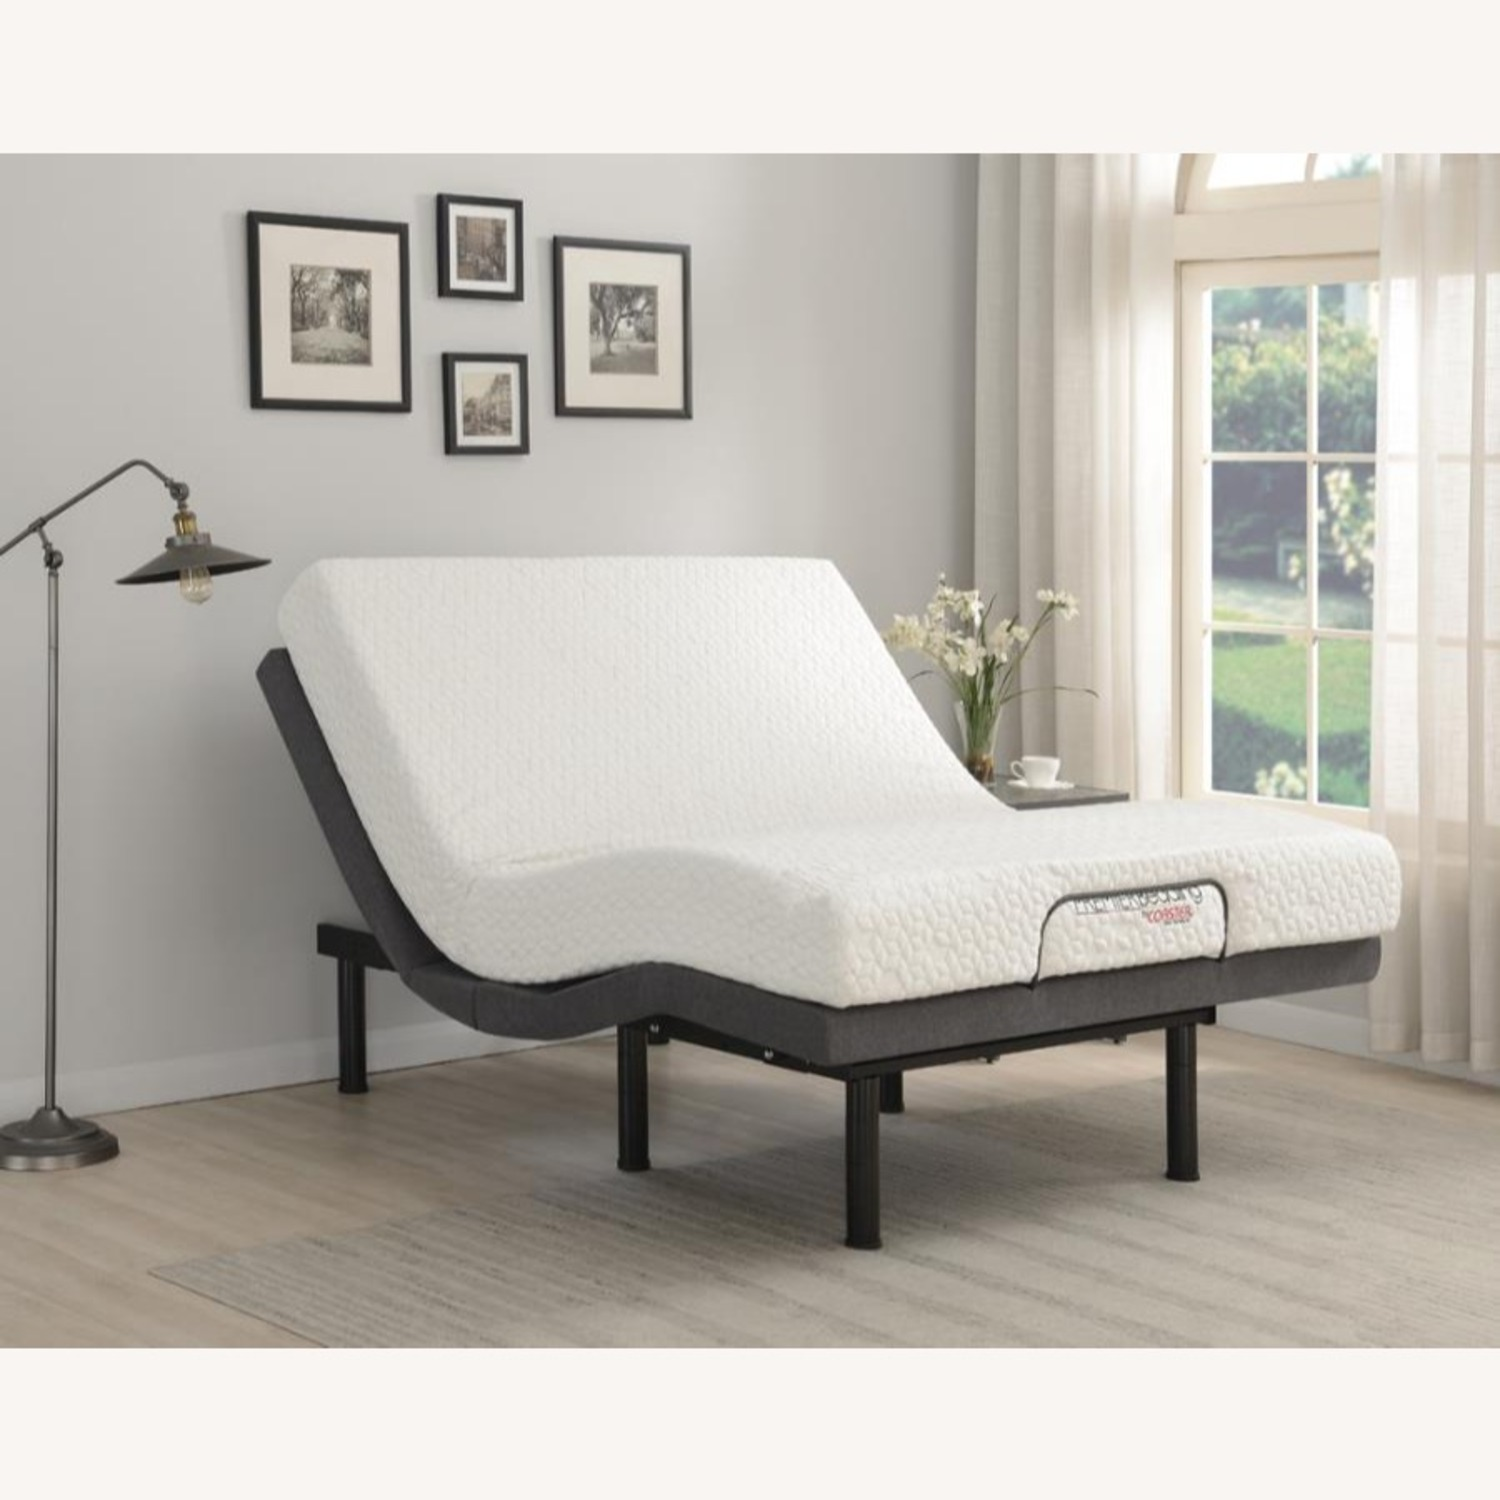 Queen Adjustable Bed Base In Grey Fabric Finish - image-15